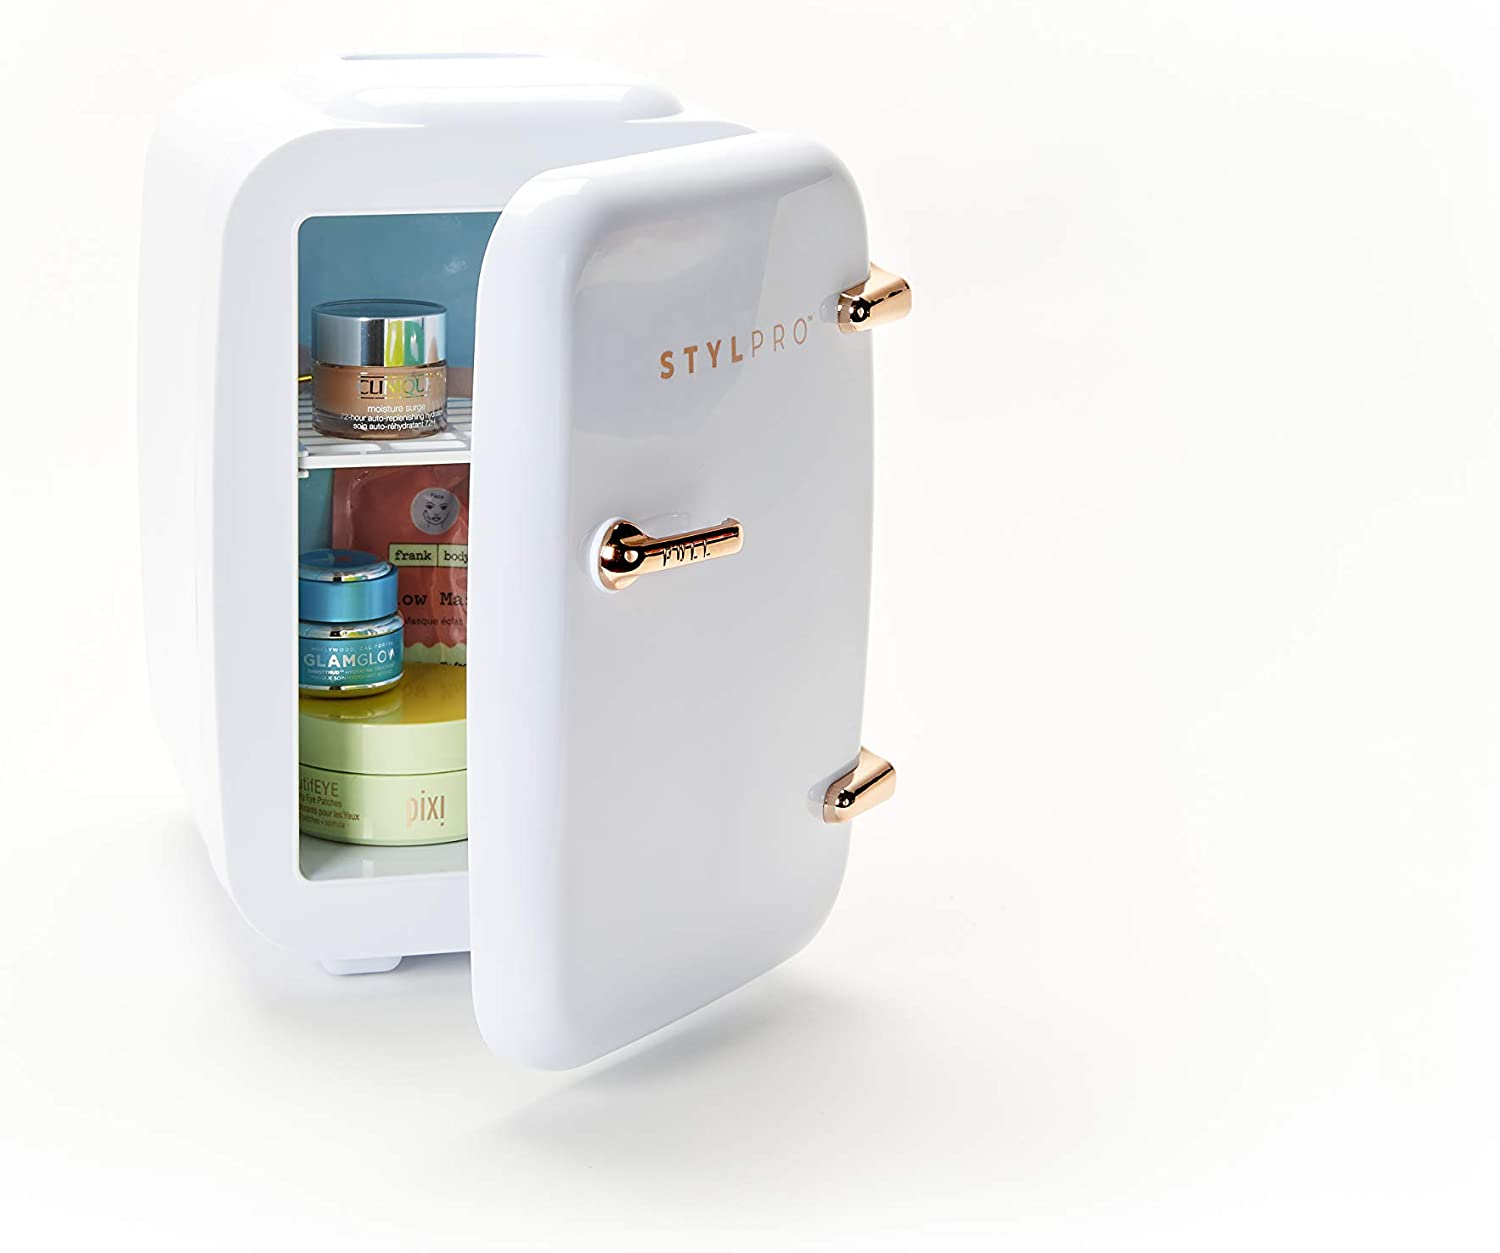 StylPro Rose Gold Mini Beauty Fridge (4 Liter/6 can): AC/DC Portable Thermoelectric Cooler and Warmer for Skincare, Nail Polish, Serums, Creams, Moisturizers, Toners, Sunscreen and Home Items